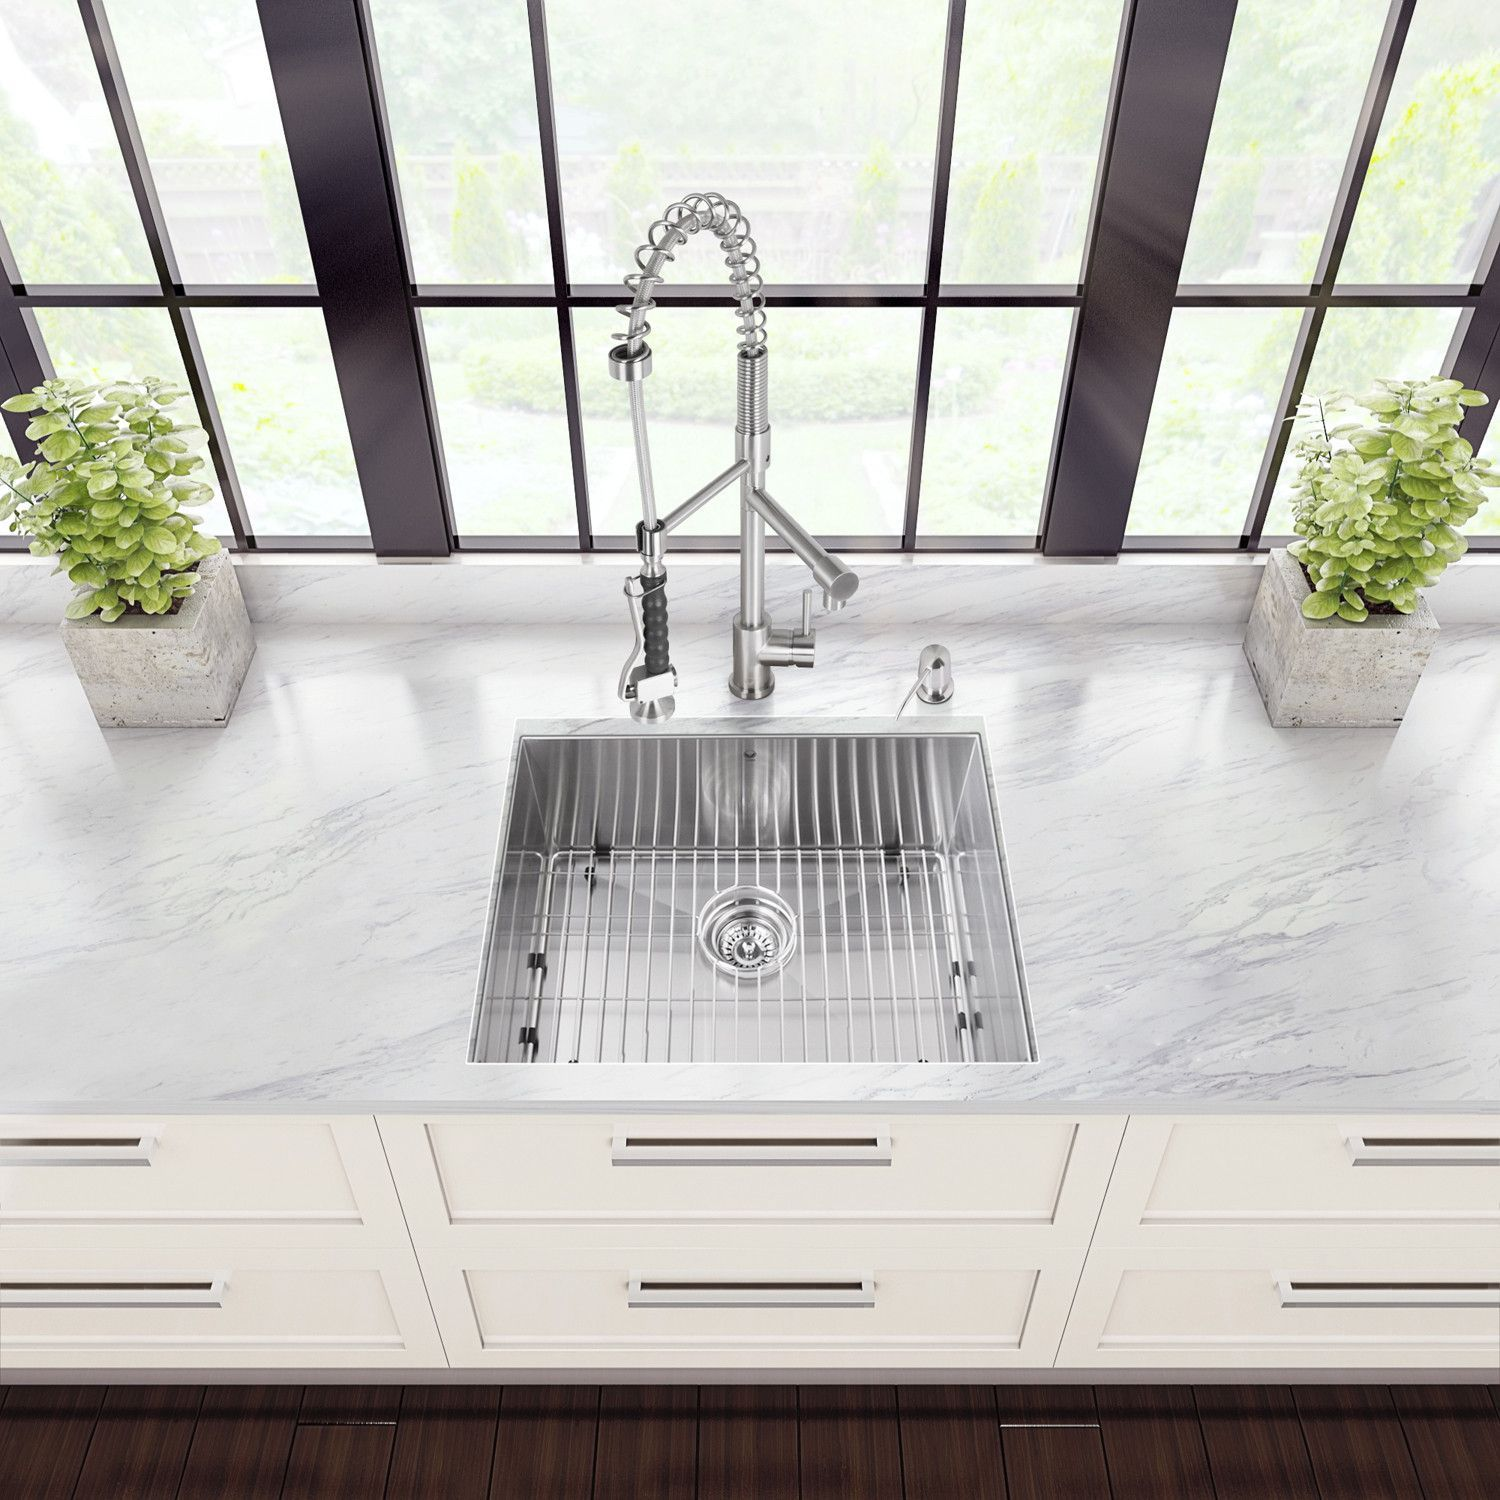 All-in-One 23-inch Stainless Steel Undermount Kitchen Sink and ...